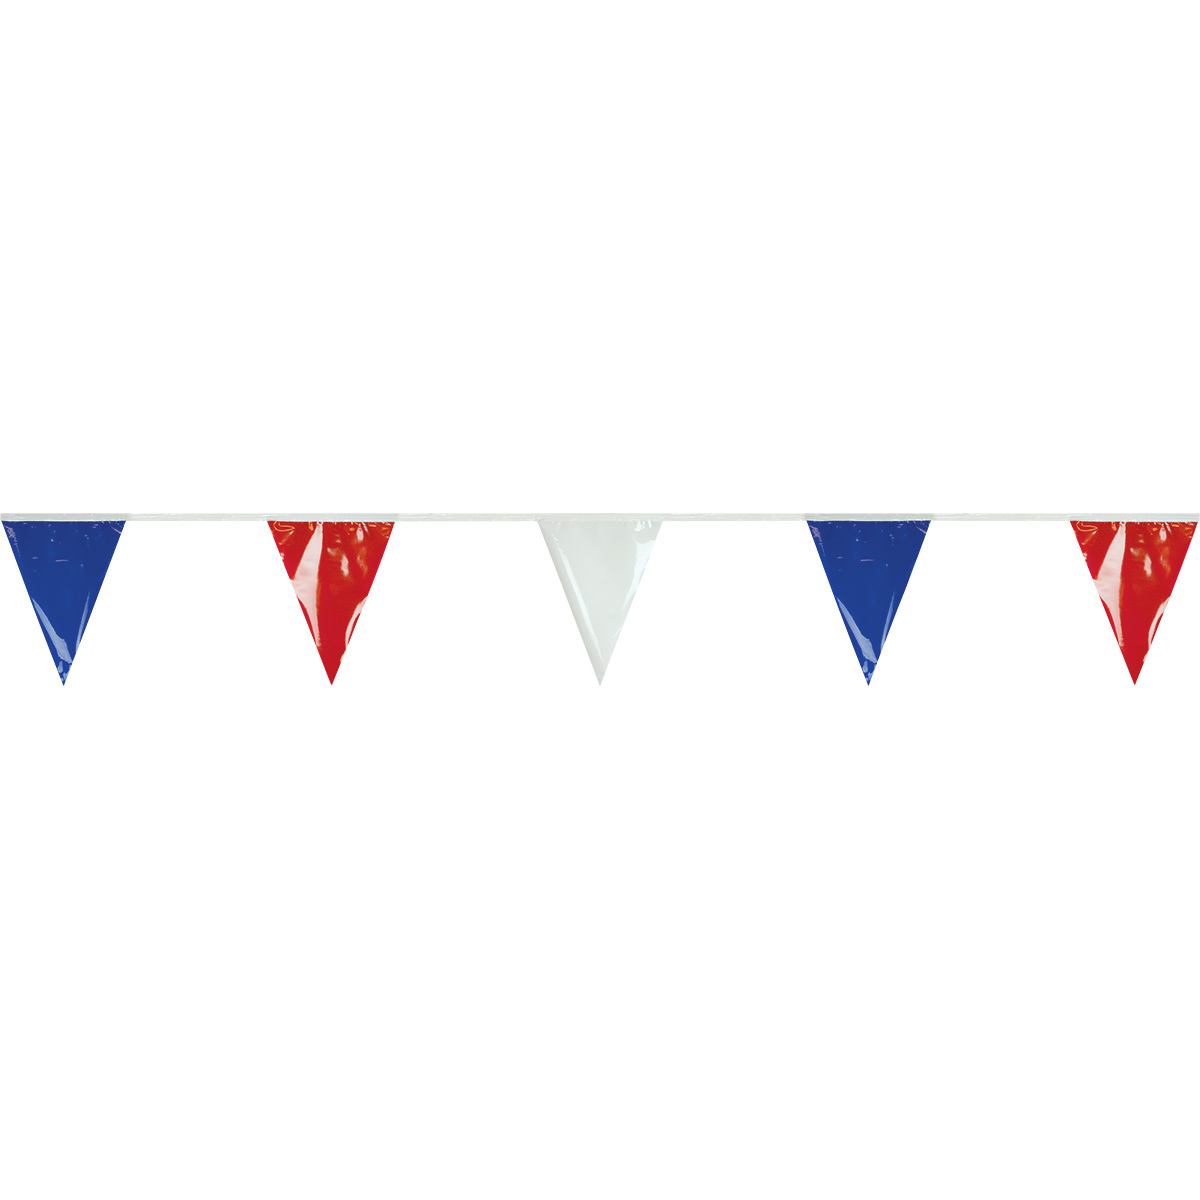 100' Pennant Streamer (Red White Blue)